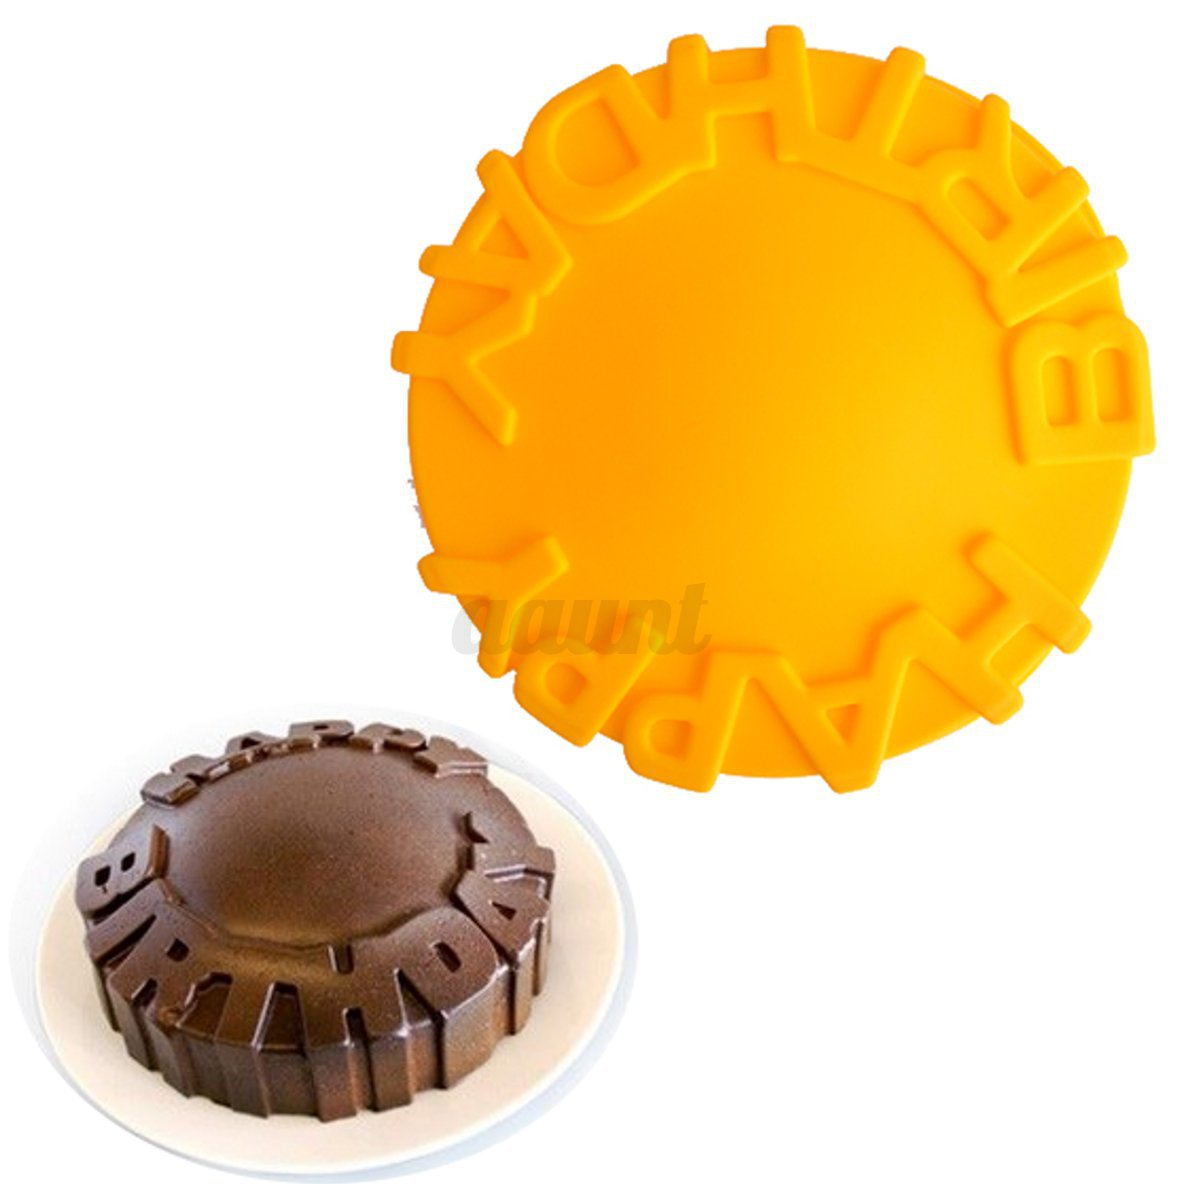 Silicone Fondant Cake Pan Mold Mousse Chocolate Pastry